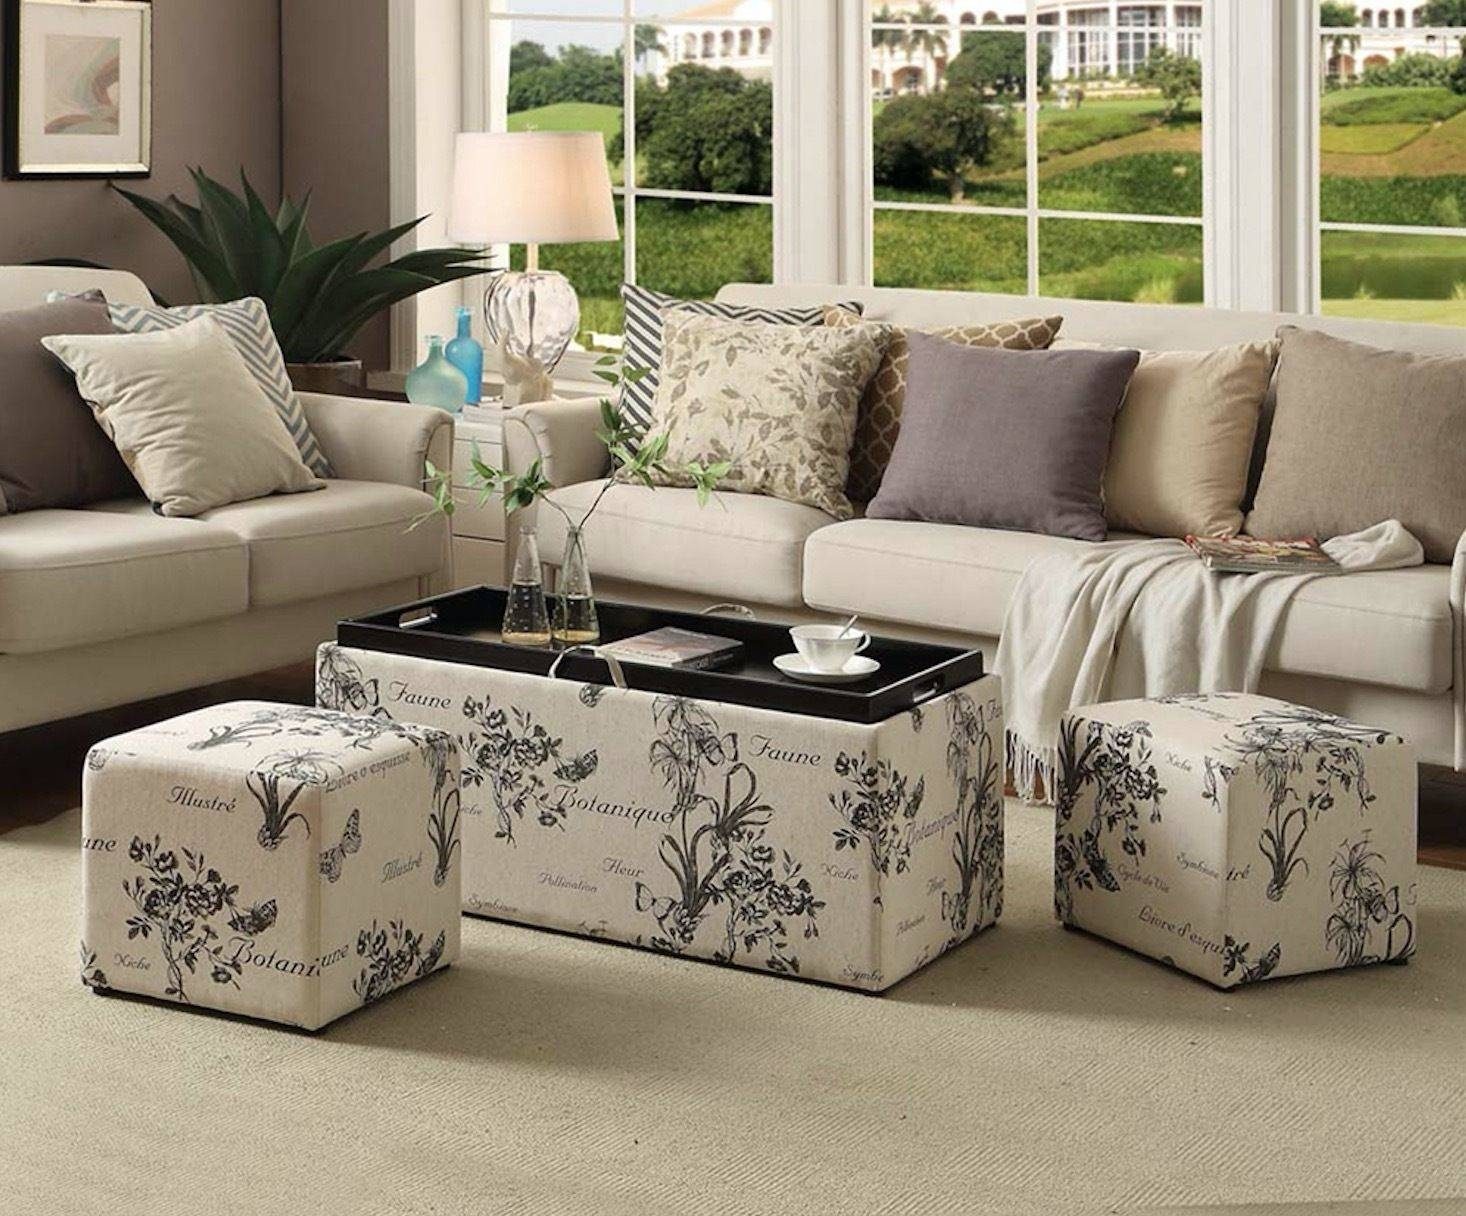 Storage Ottoman Bench Coffee Table Footstool Furniture Tray Fabric pertaining to Footstool Coffee Tables (Image 27 of 30)